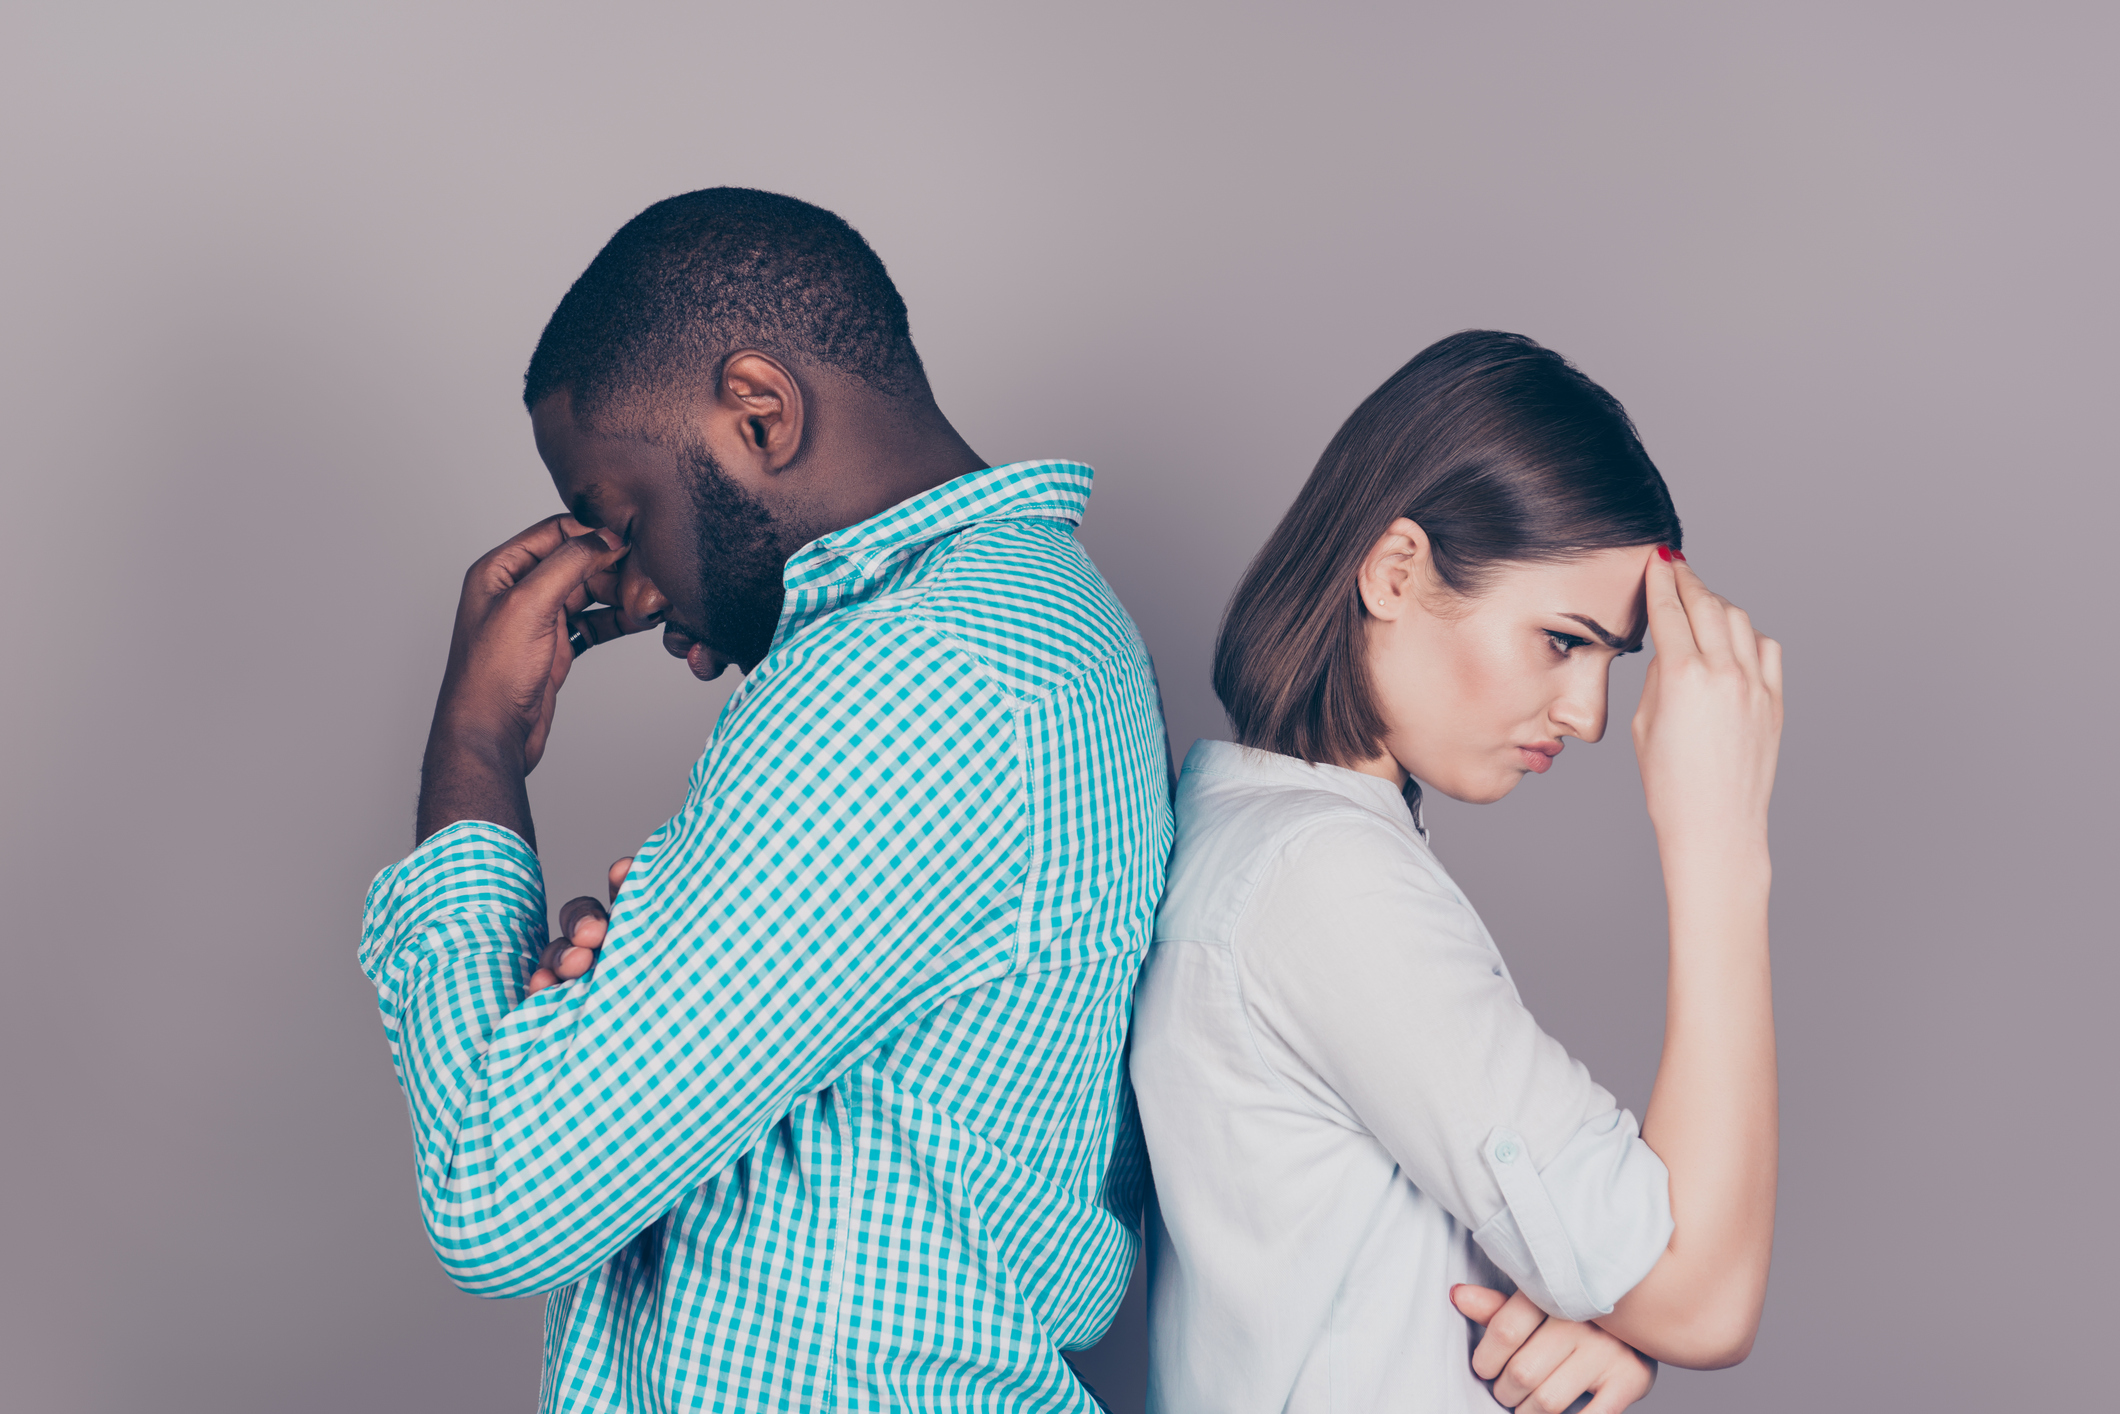 When a woman gives up on a relationship